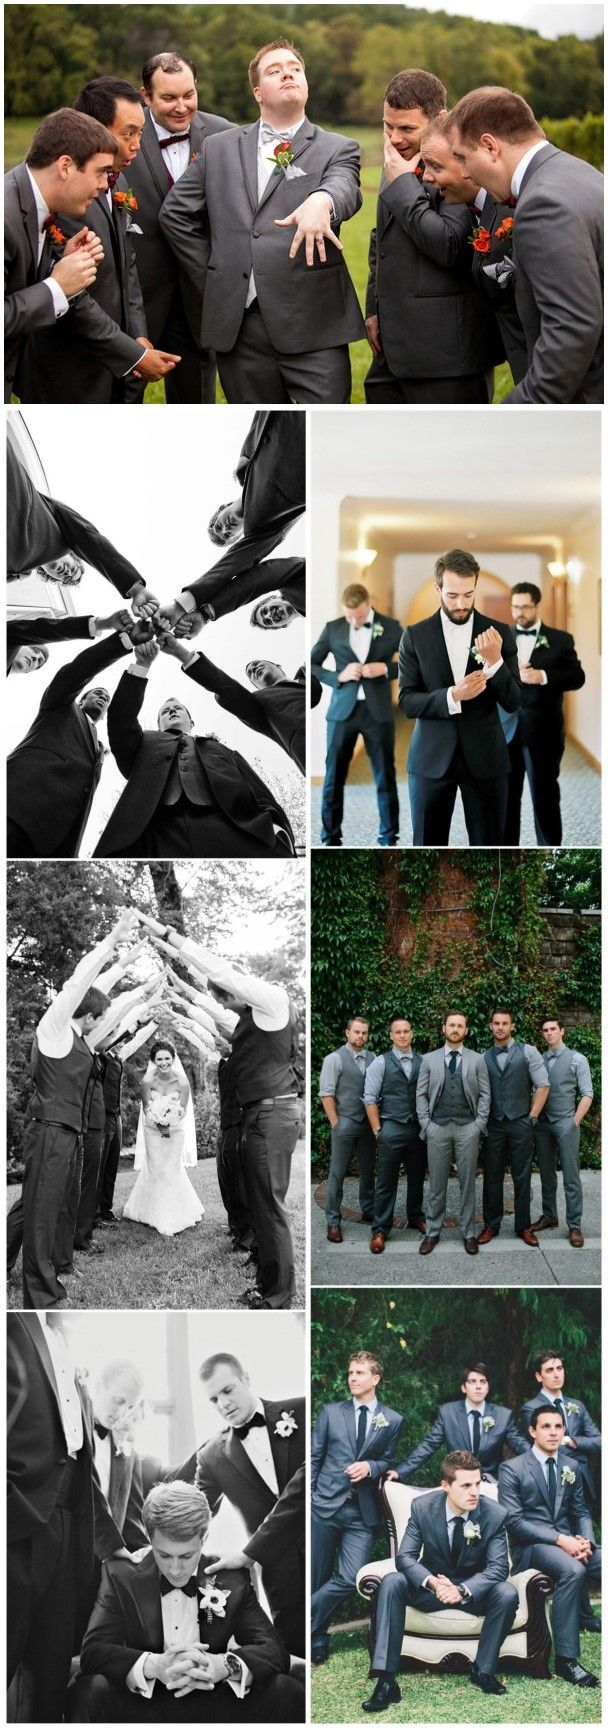 21 Must-have Groomsmen Photos Ideas to Make an Awesome Wedding - WeddingInclude